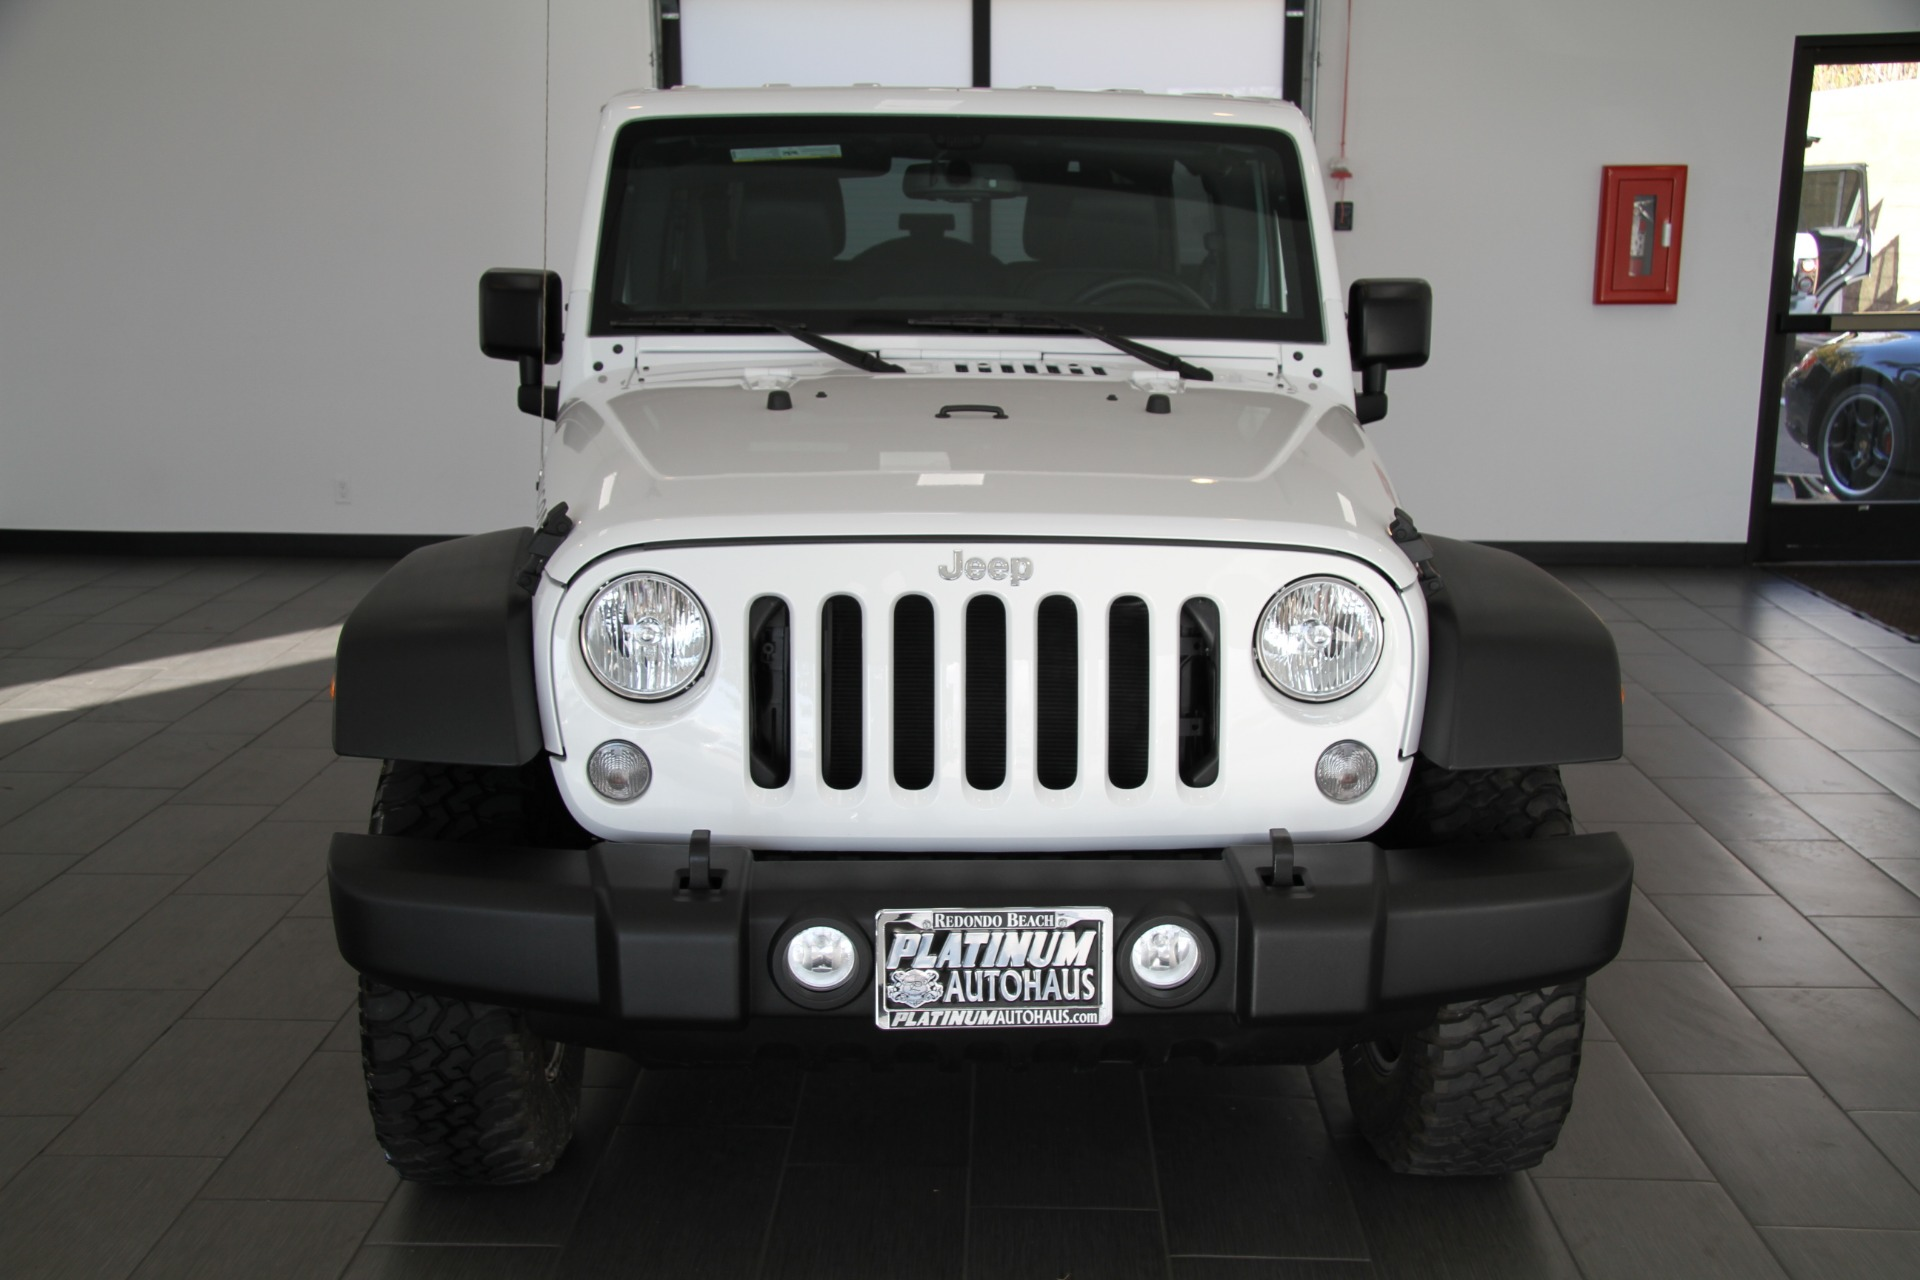 Used Jeep Wrangler Near Me >> 2016 Jeep Wrangler Unlimited Rubicon Stock # 124304 for ...